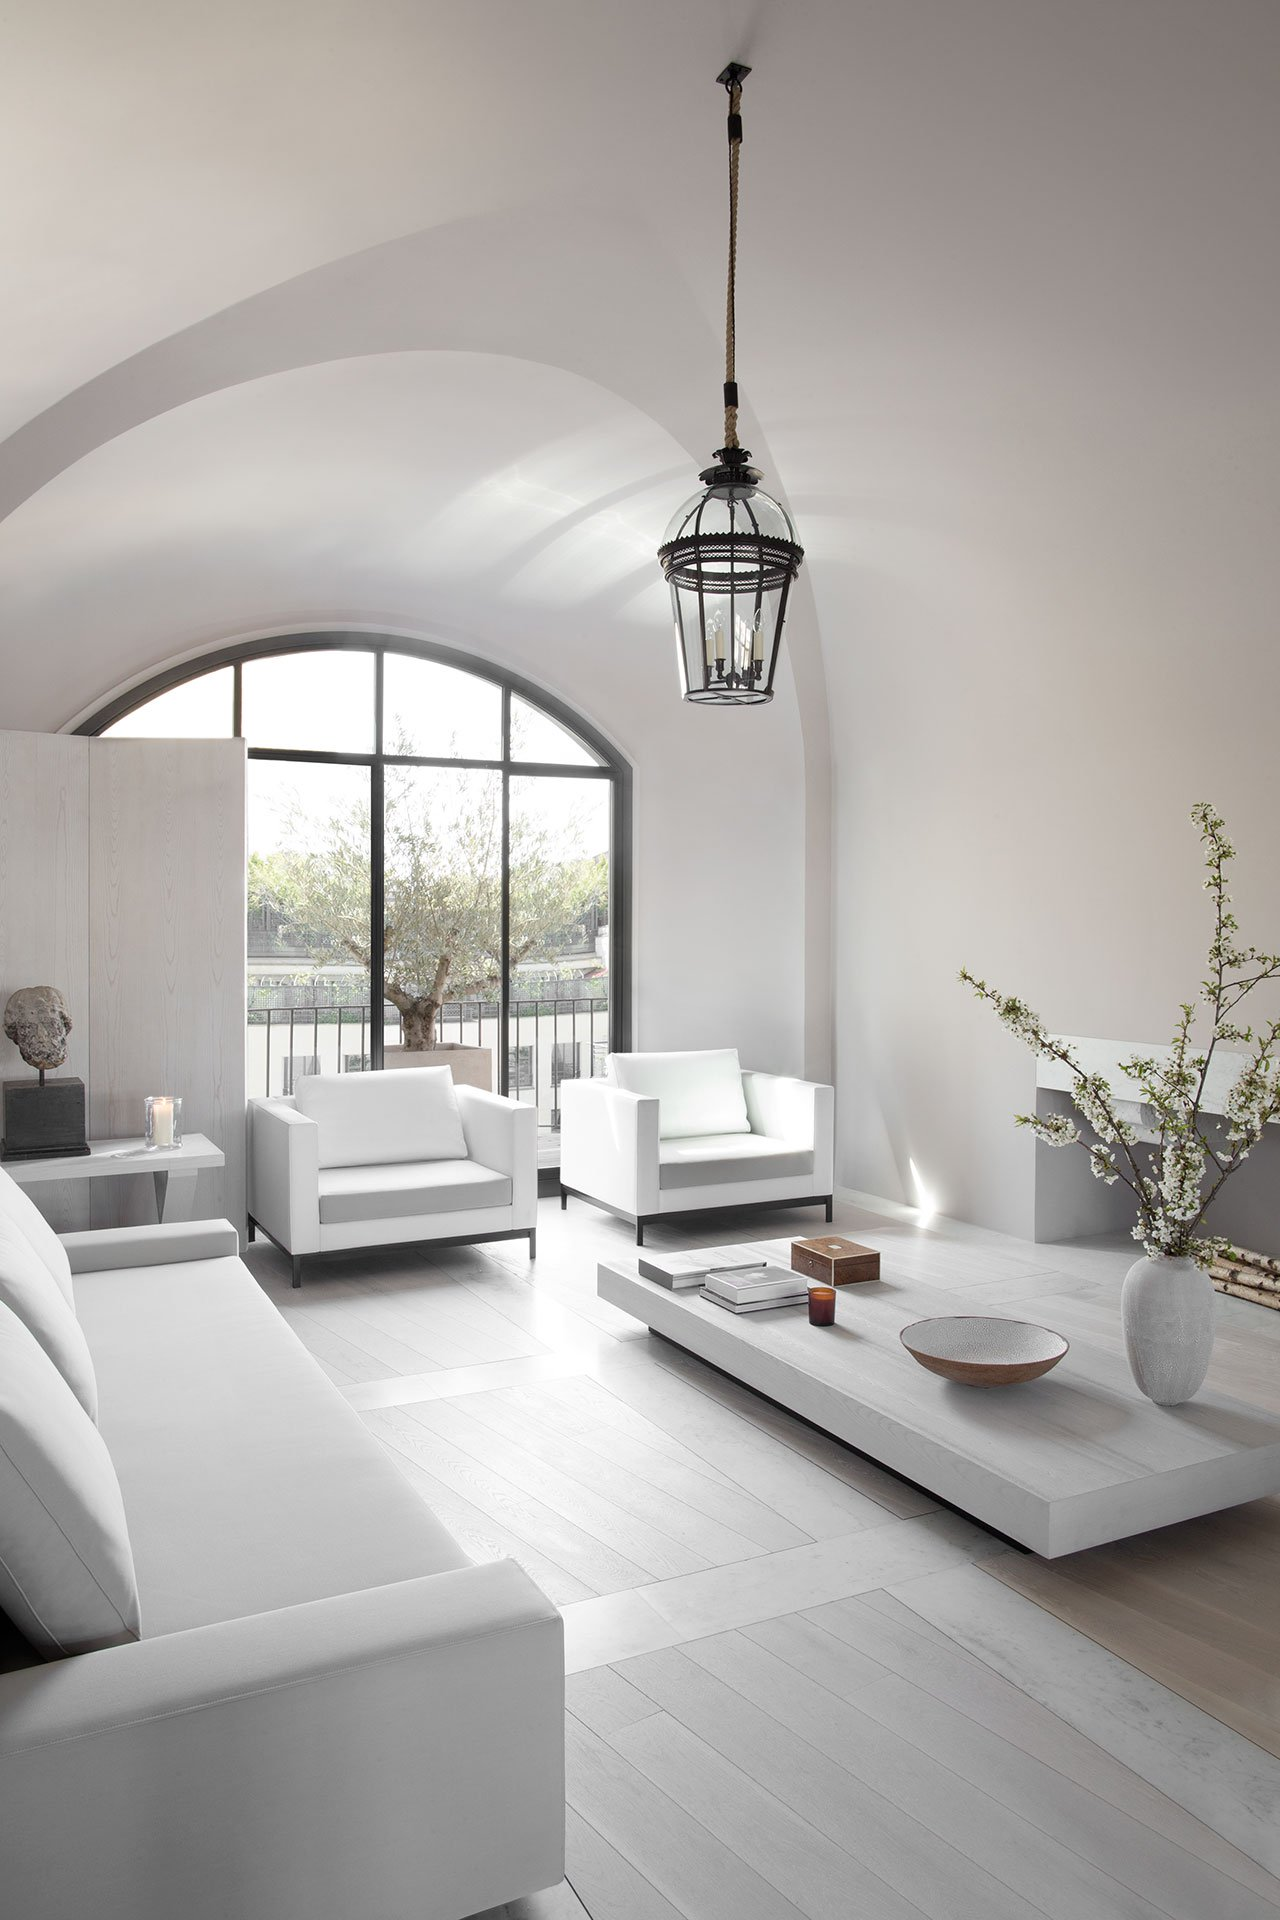 The living room is a light filled space with white furniture and much light coming through an arched window